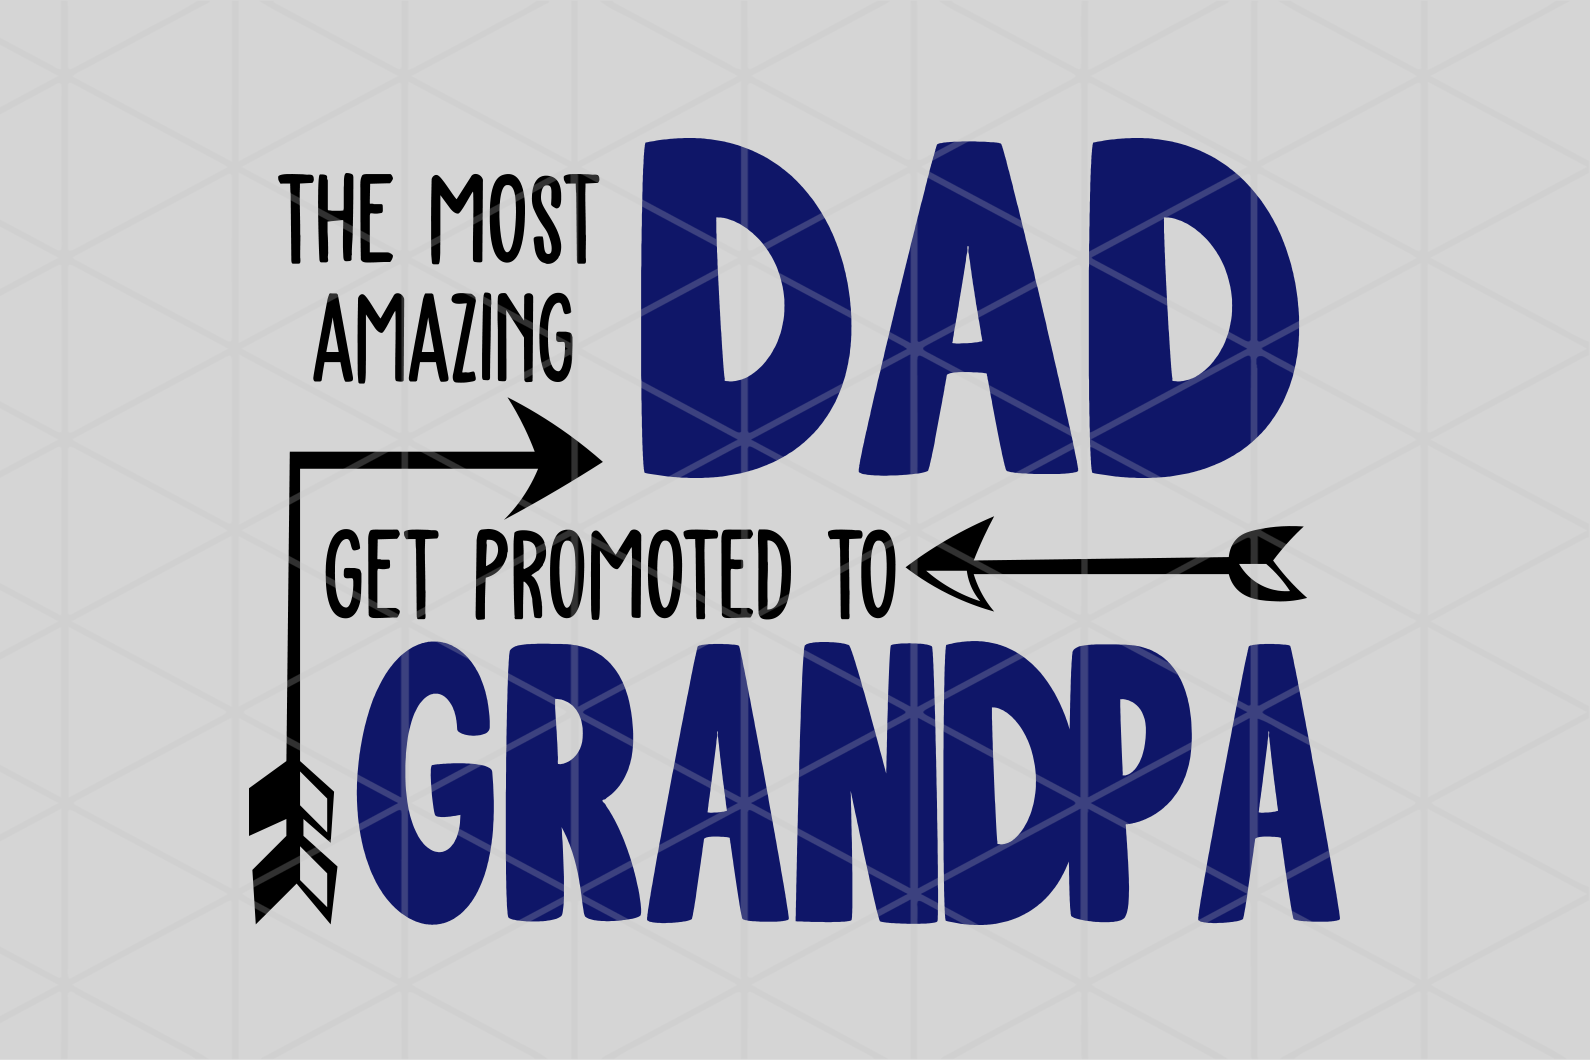 The most amazing dads get promoted to grandpa,fathers day svg, fathers day gift,happy fathers day,love father,father gift,fathers day shirt, gift for father,happy fathers day gift,dad svg,grandfather svg,grandfather gifts,dad gifts.